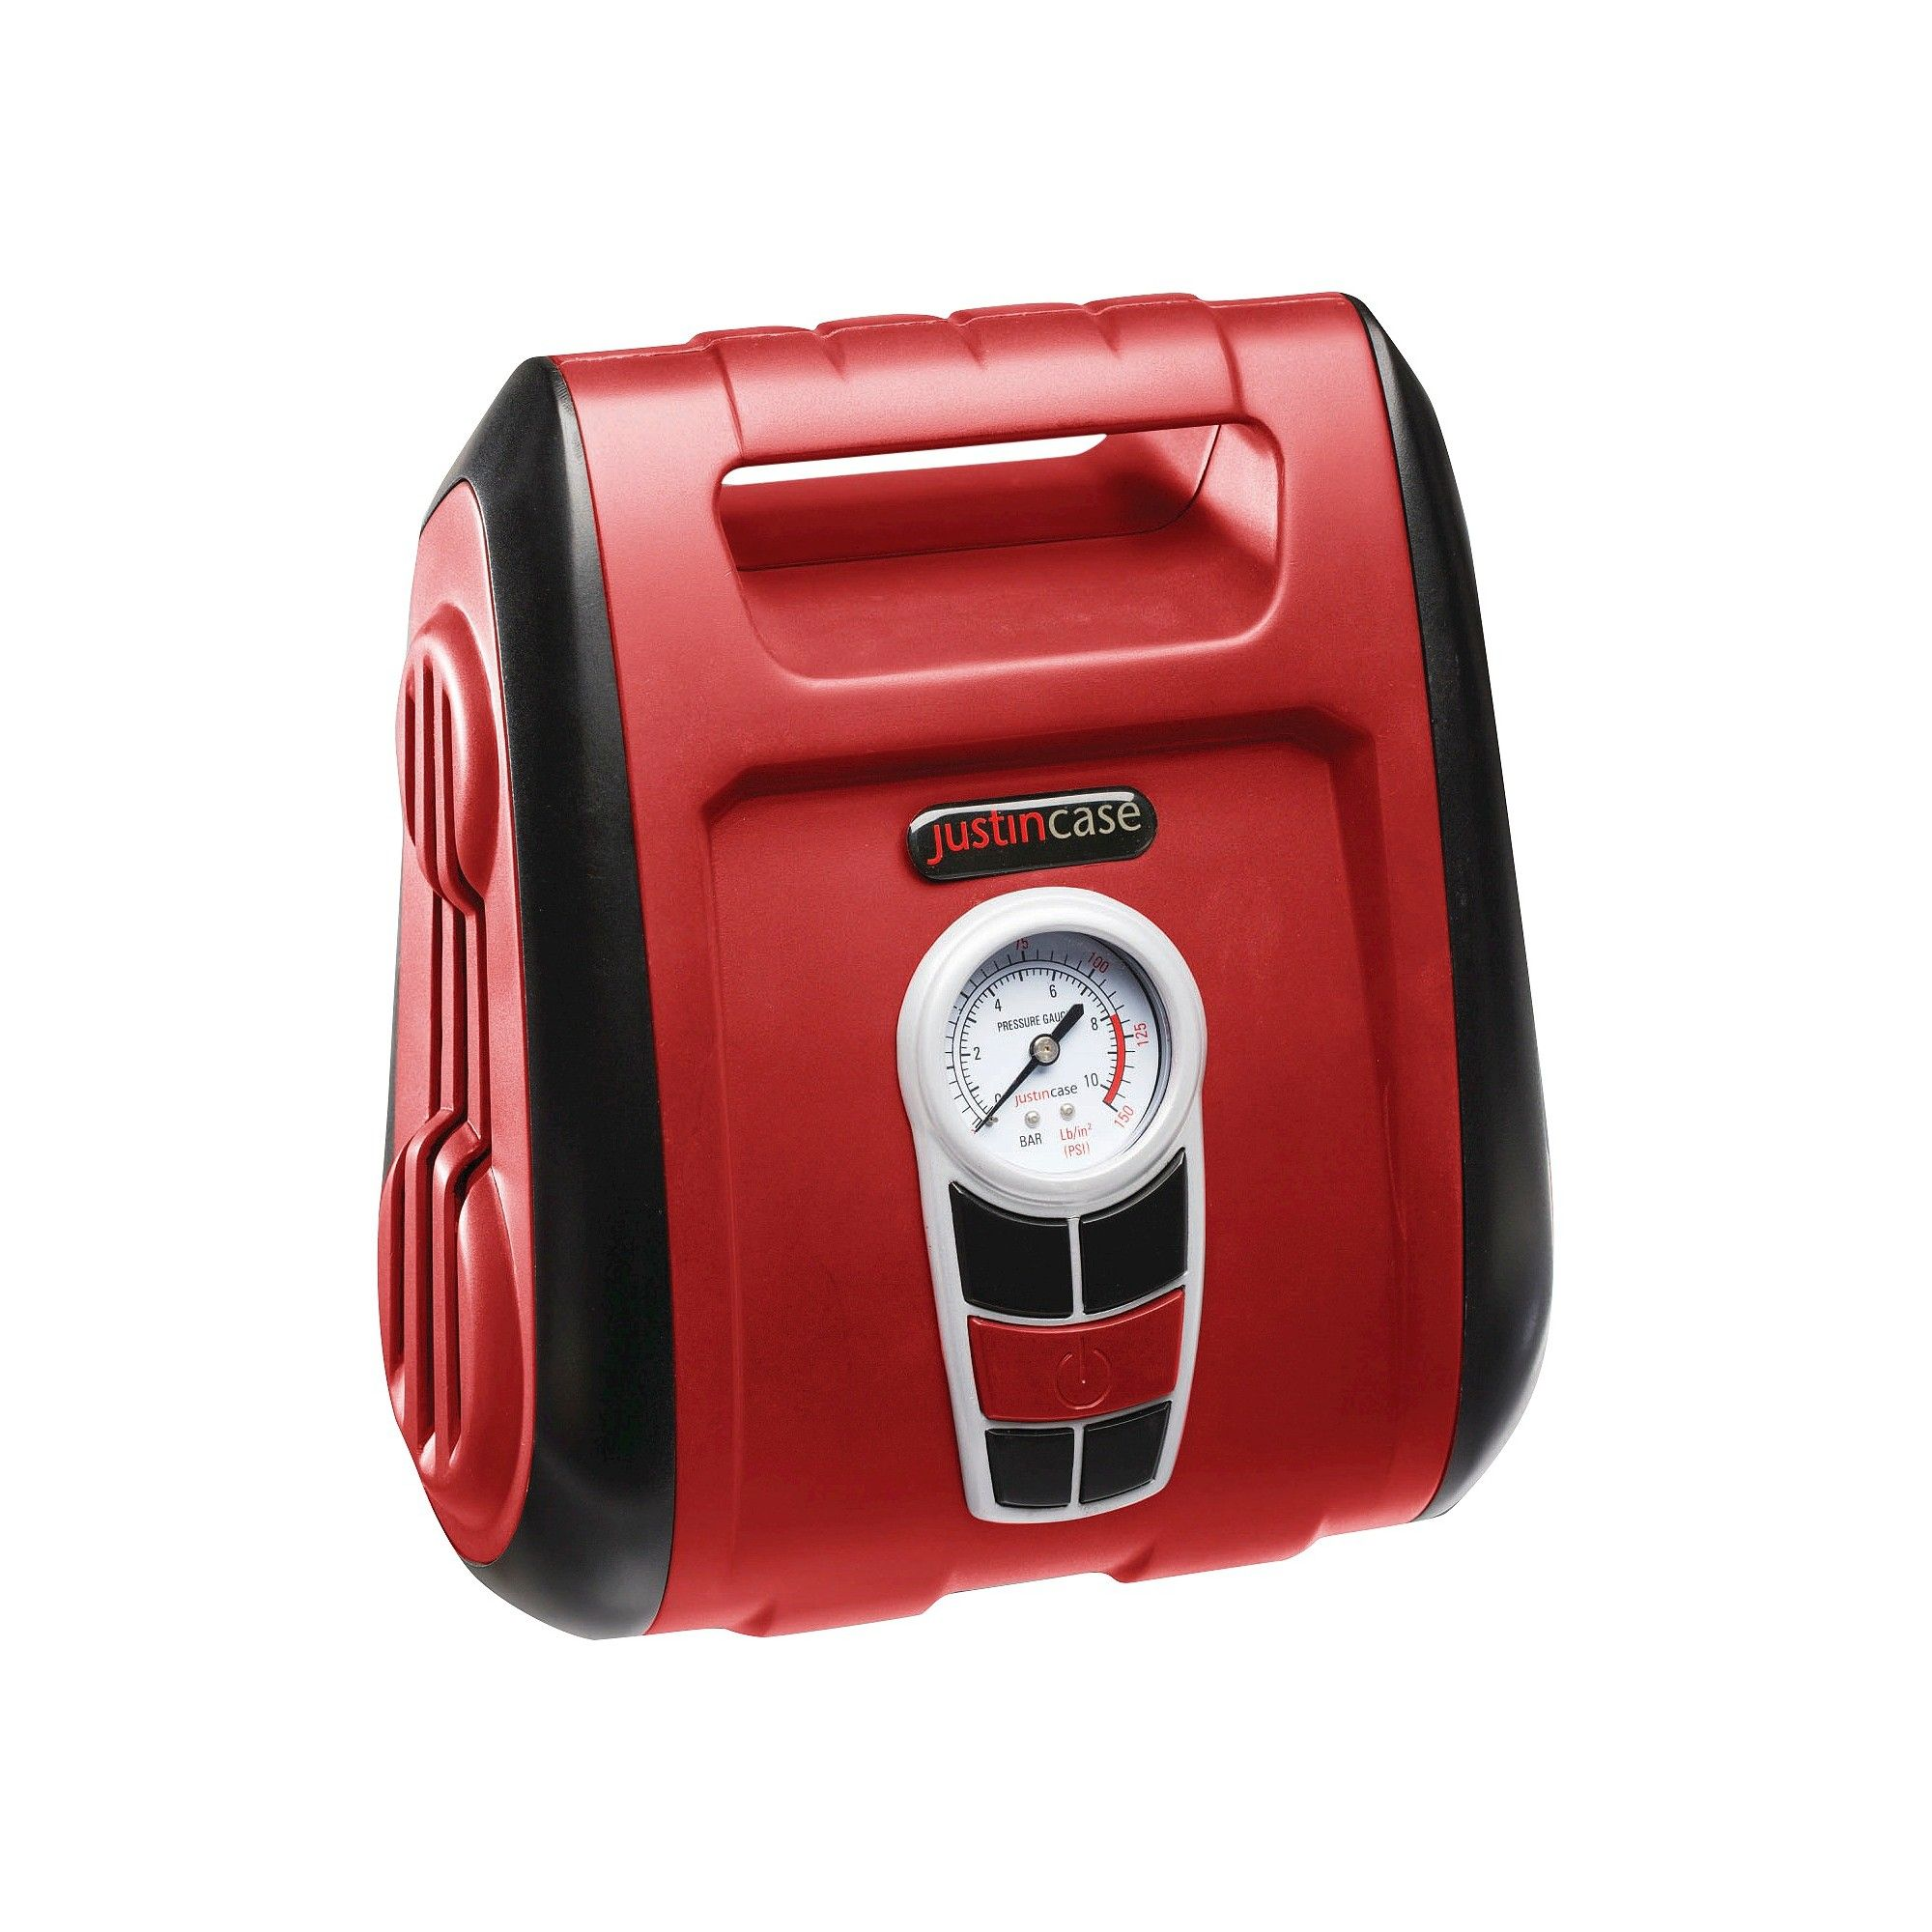 Justin Case Tire Inflator Specialty Series Garage